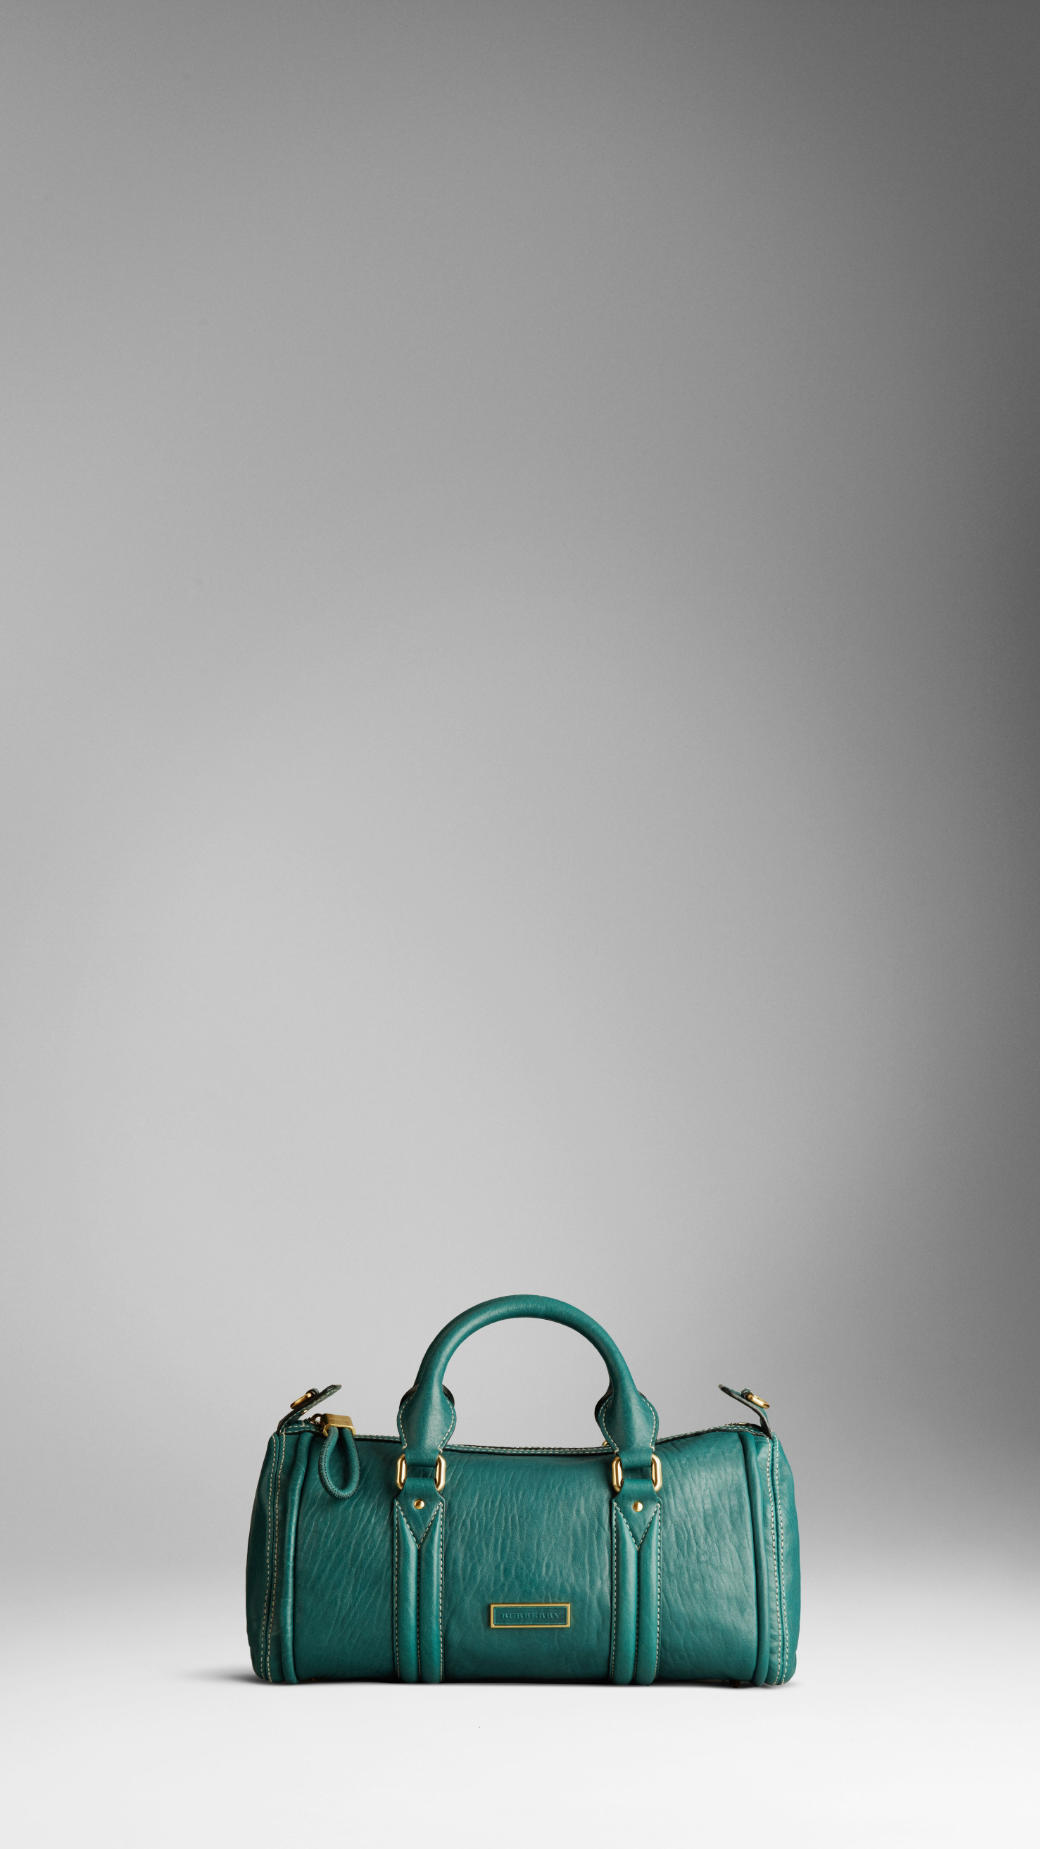 233f07752fec Lyst - Burberry Small Grainy Leather Bowling Bag in Green